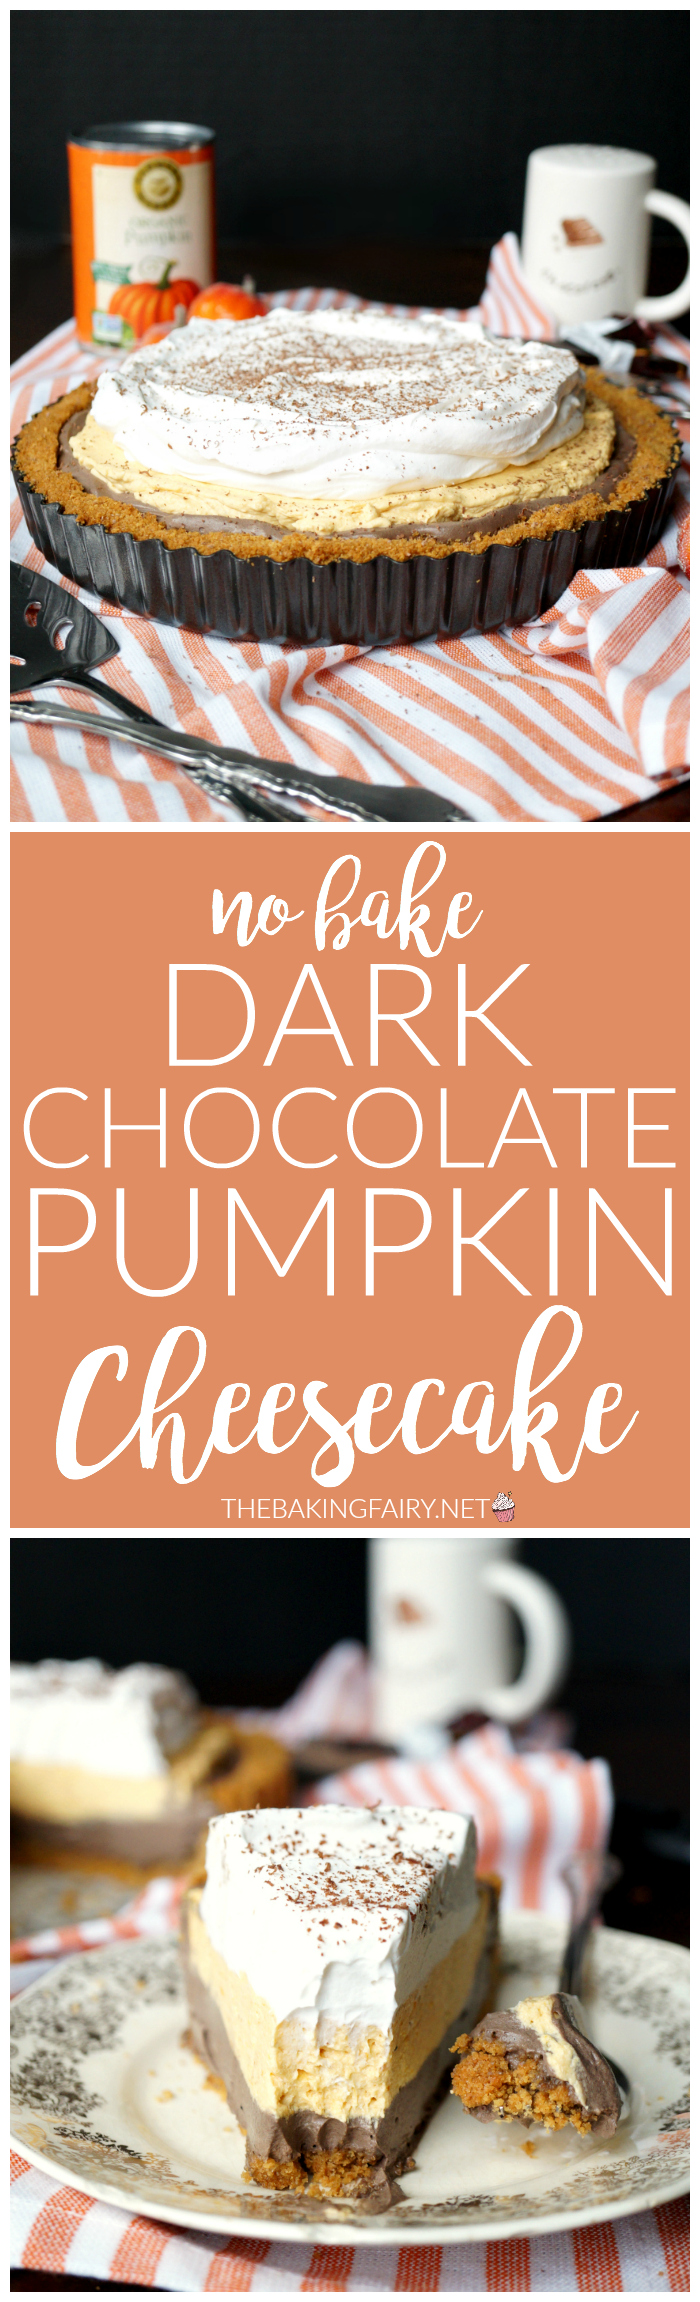 No Bake Dark Chocolate Pumpkin Cheesecake The Baking Fairy